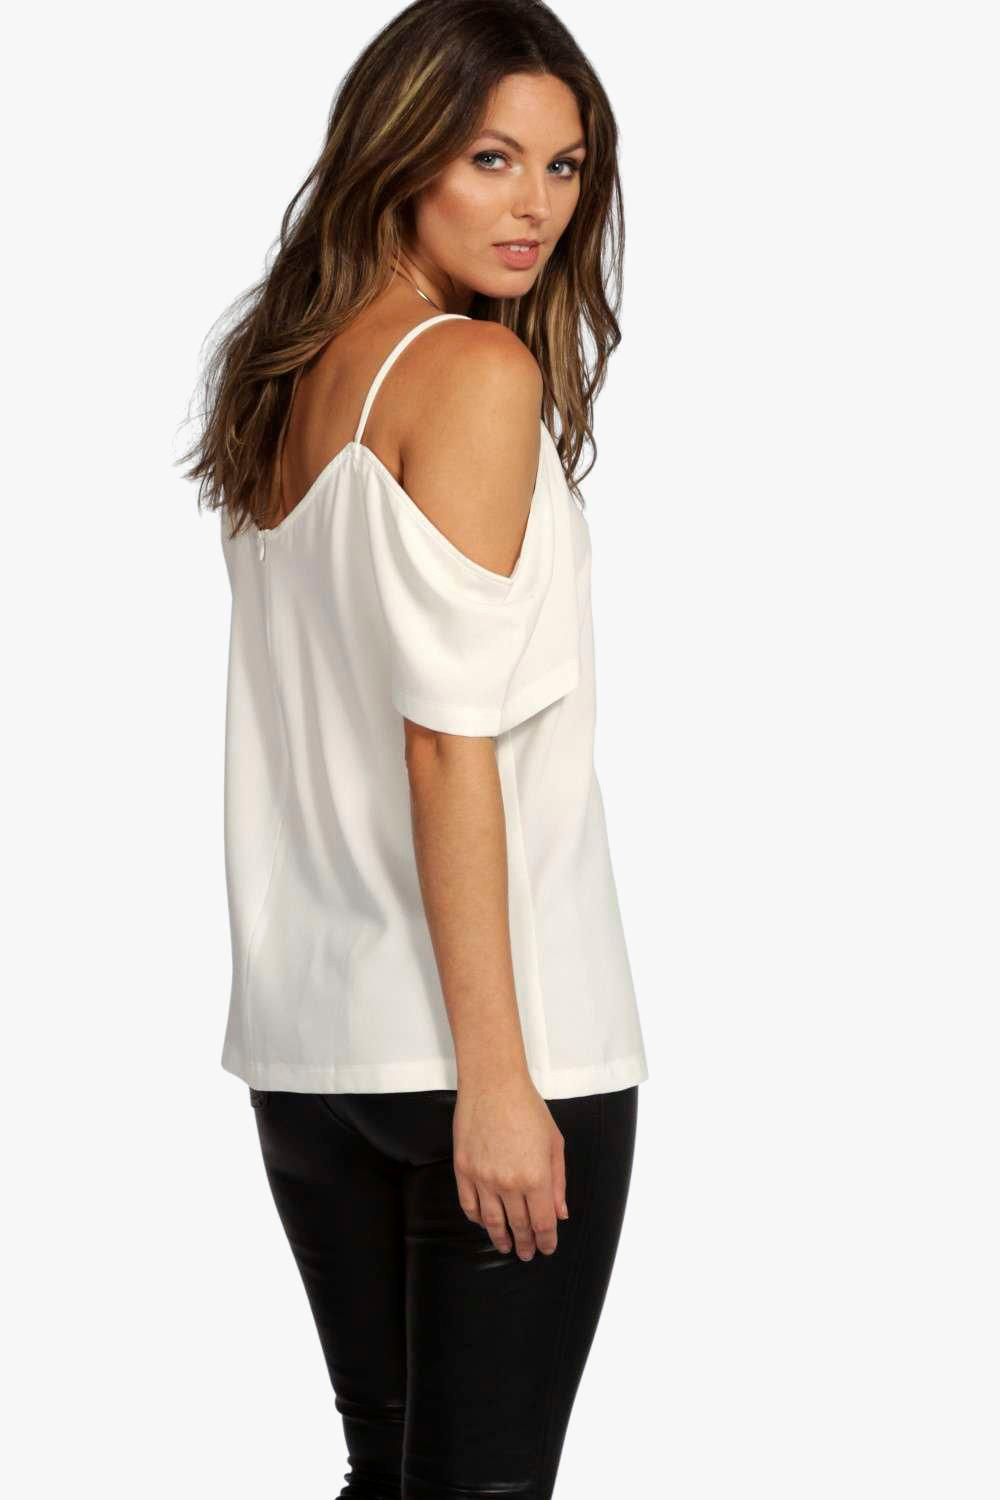 723097b029b349 Boohoo - White Woven Strappy Open Shoulder Top - Lyst. View fullscreen